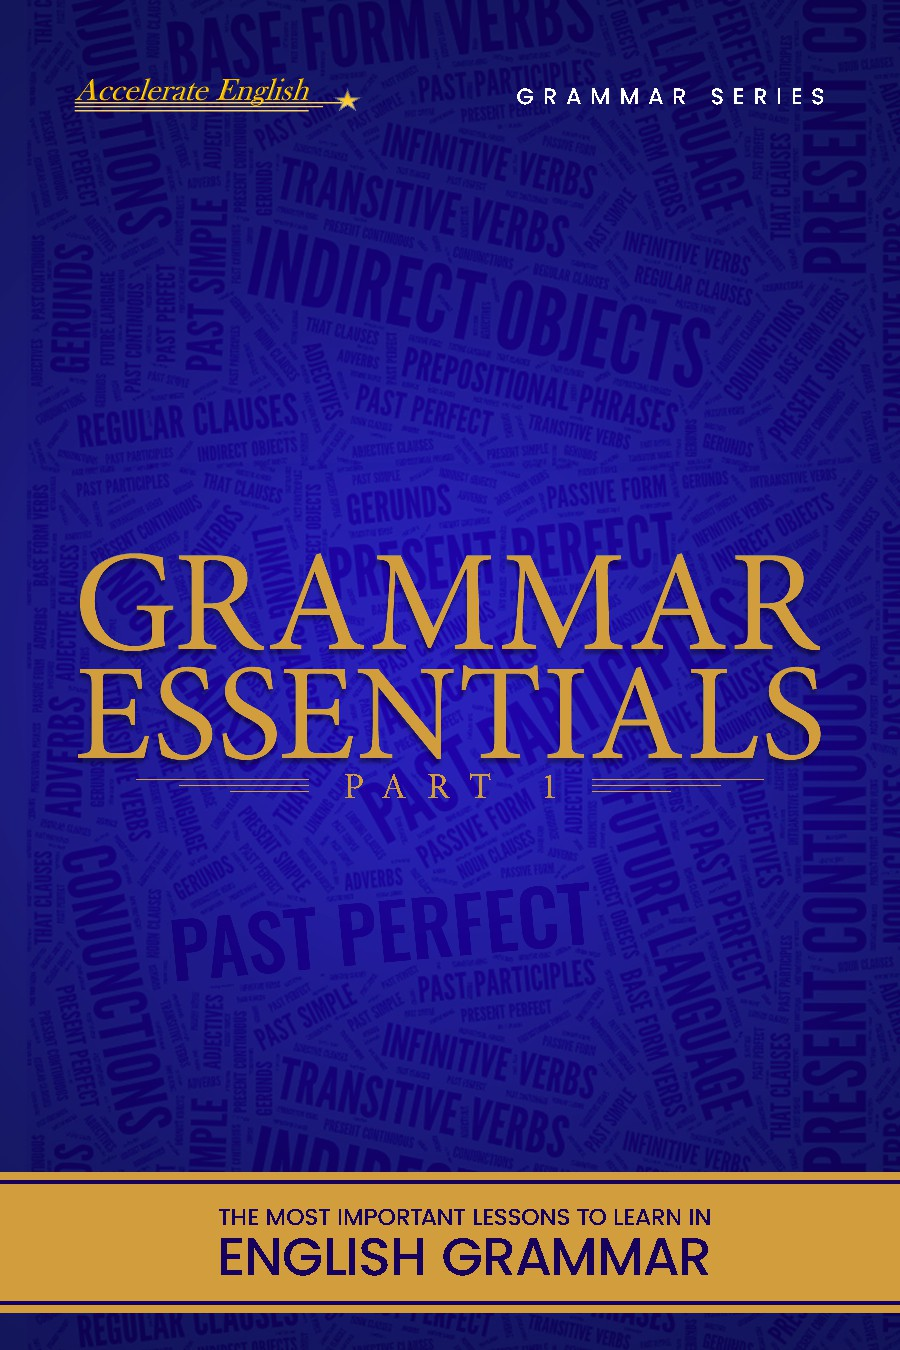 An E-book cover for a new series of English Textbooks